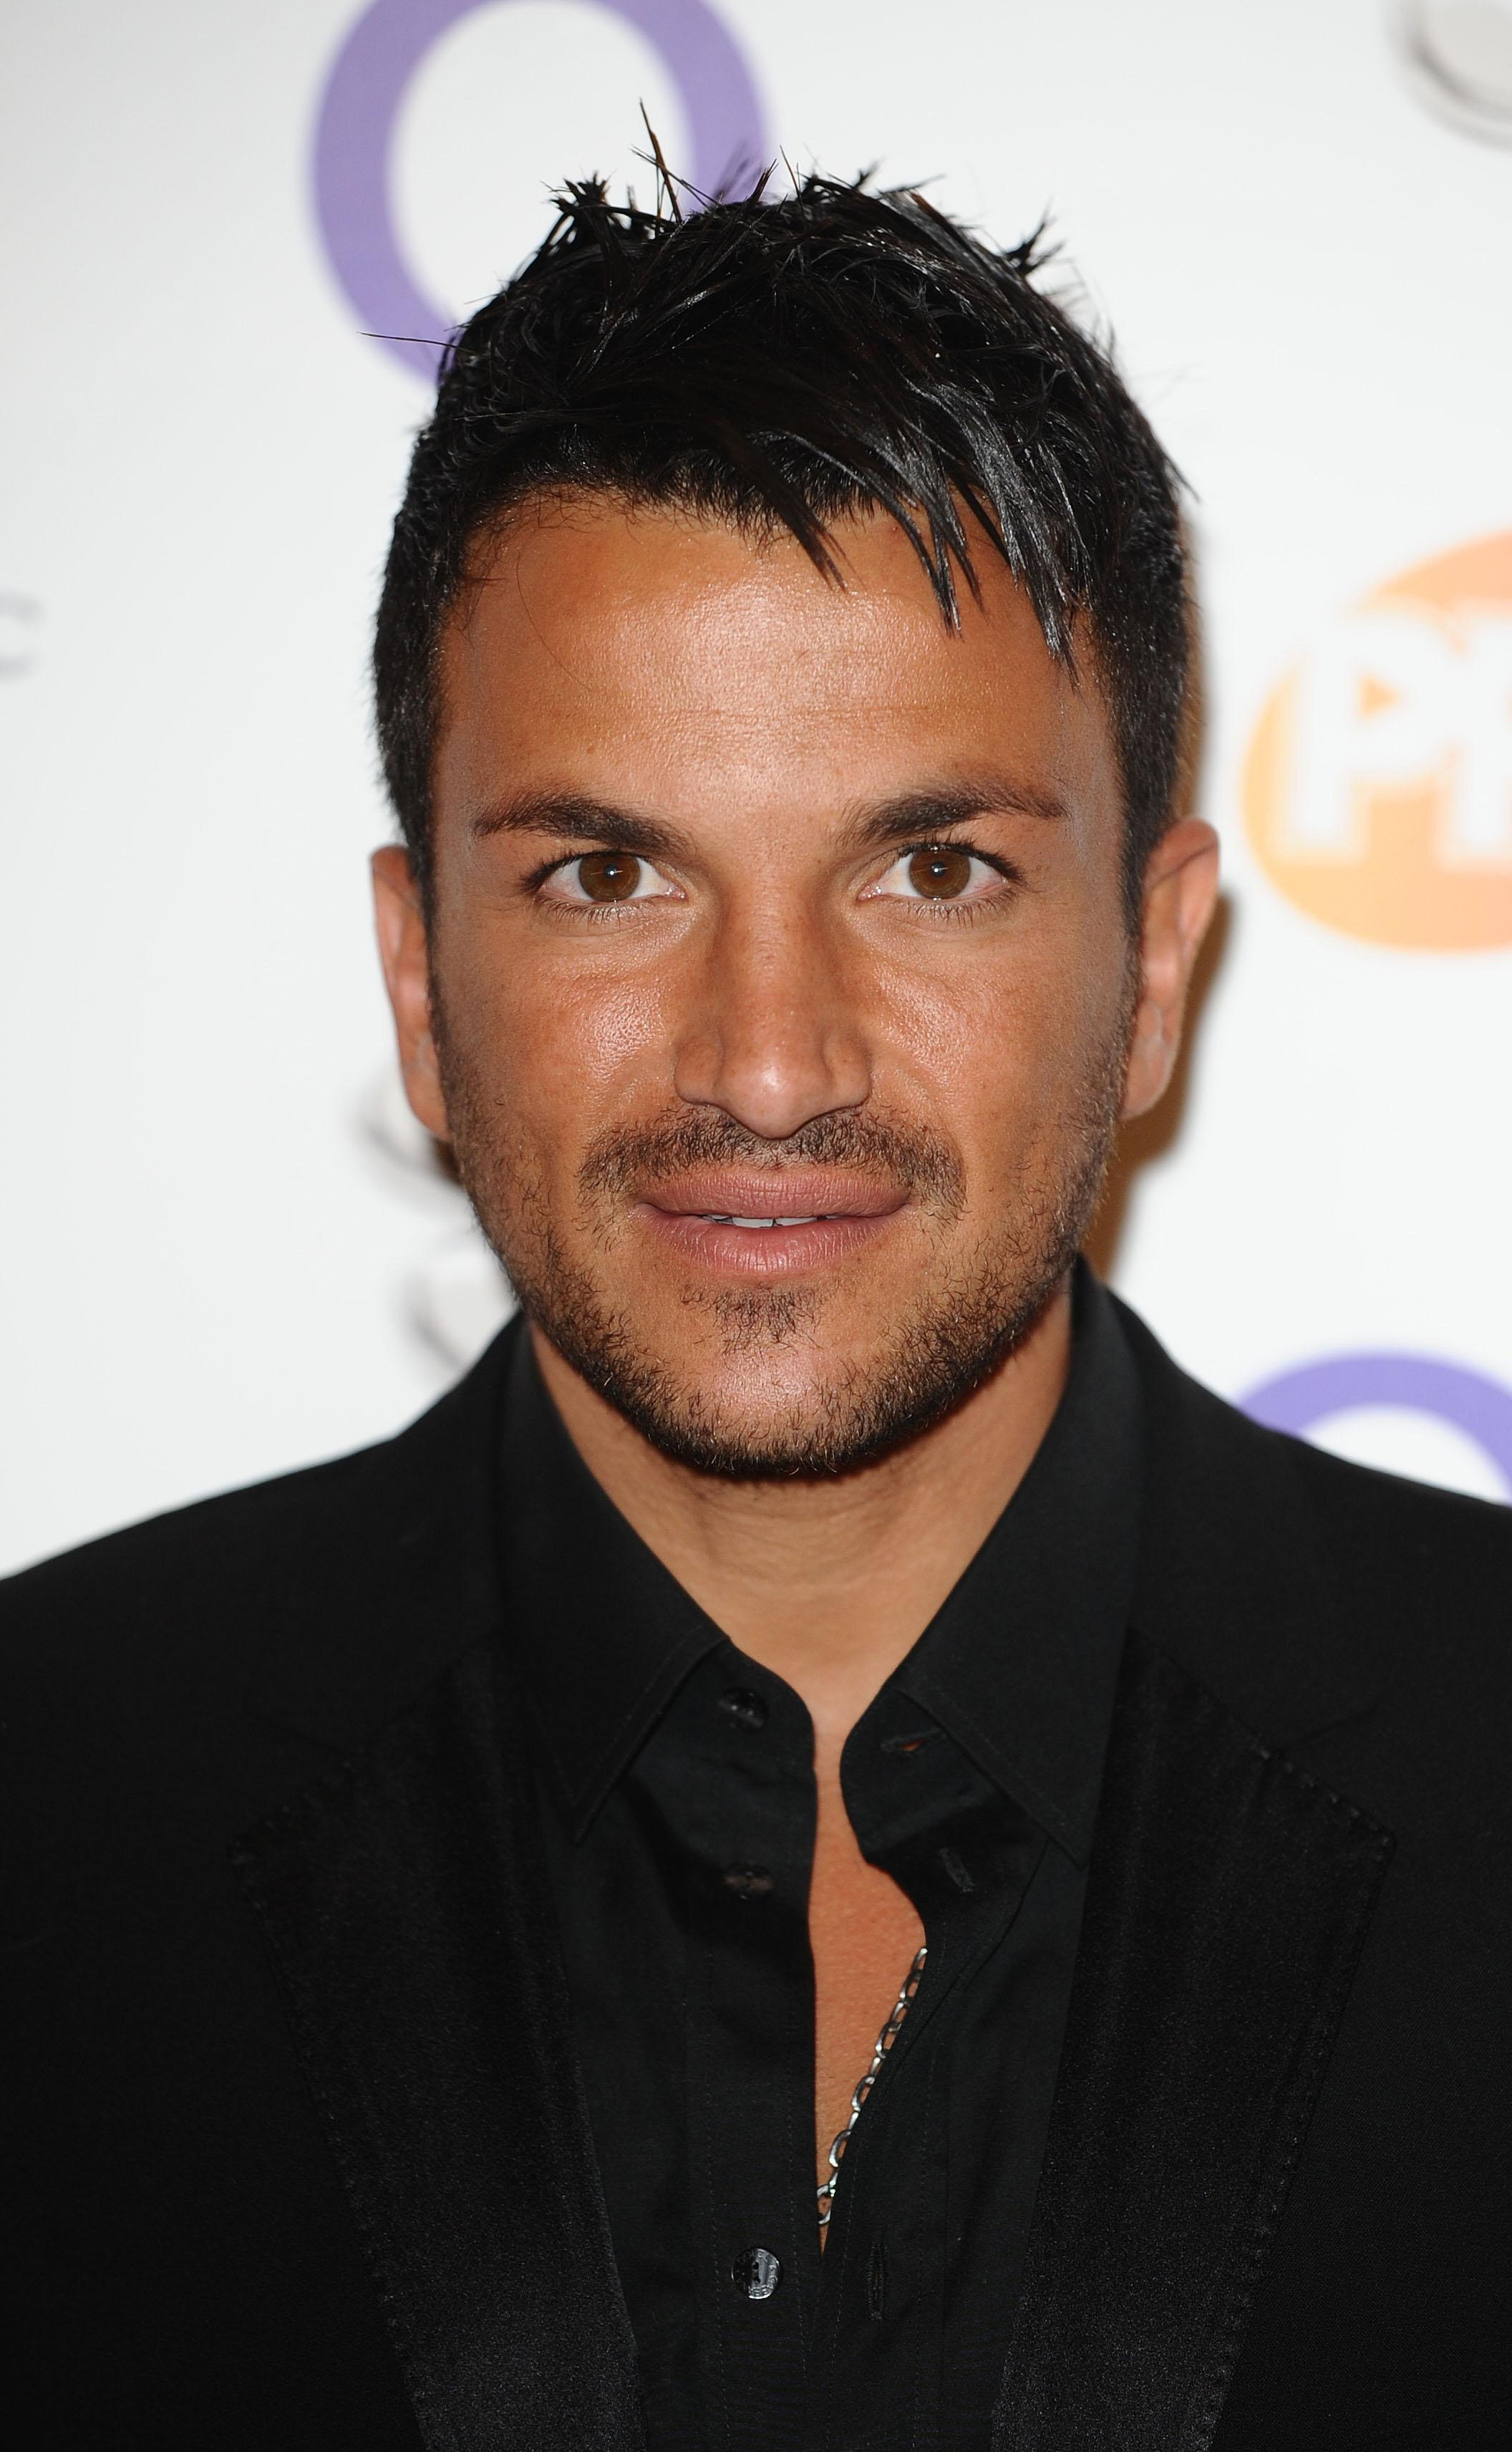 who is peter andre currently dating